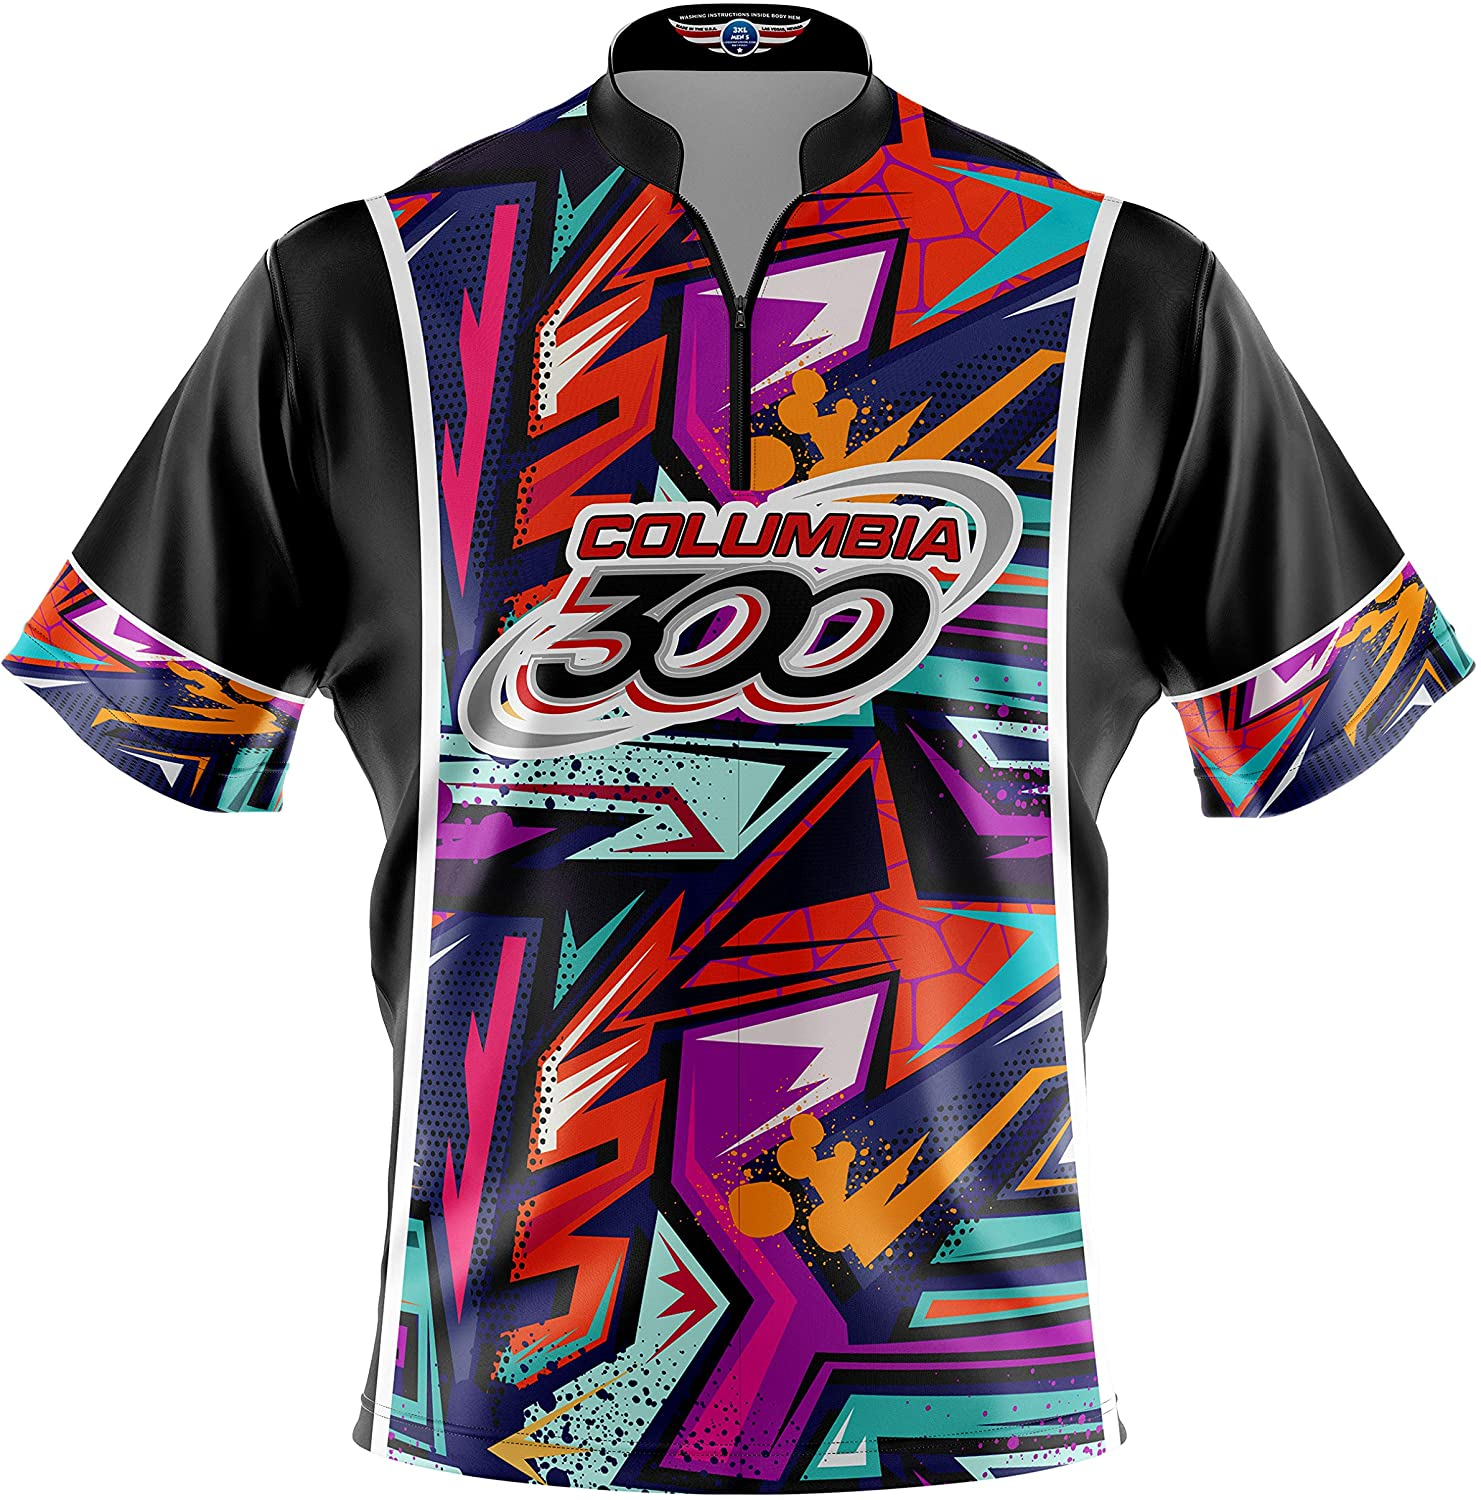 Logo Infusion Bowling Dye-Sublimated Jersey (Sash Collar) - Columbia 300 Style 0312